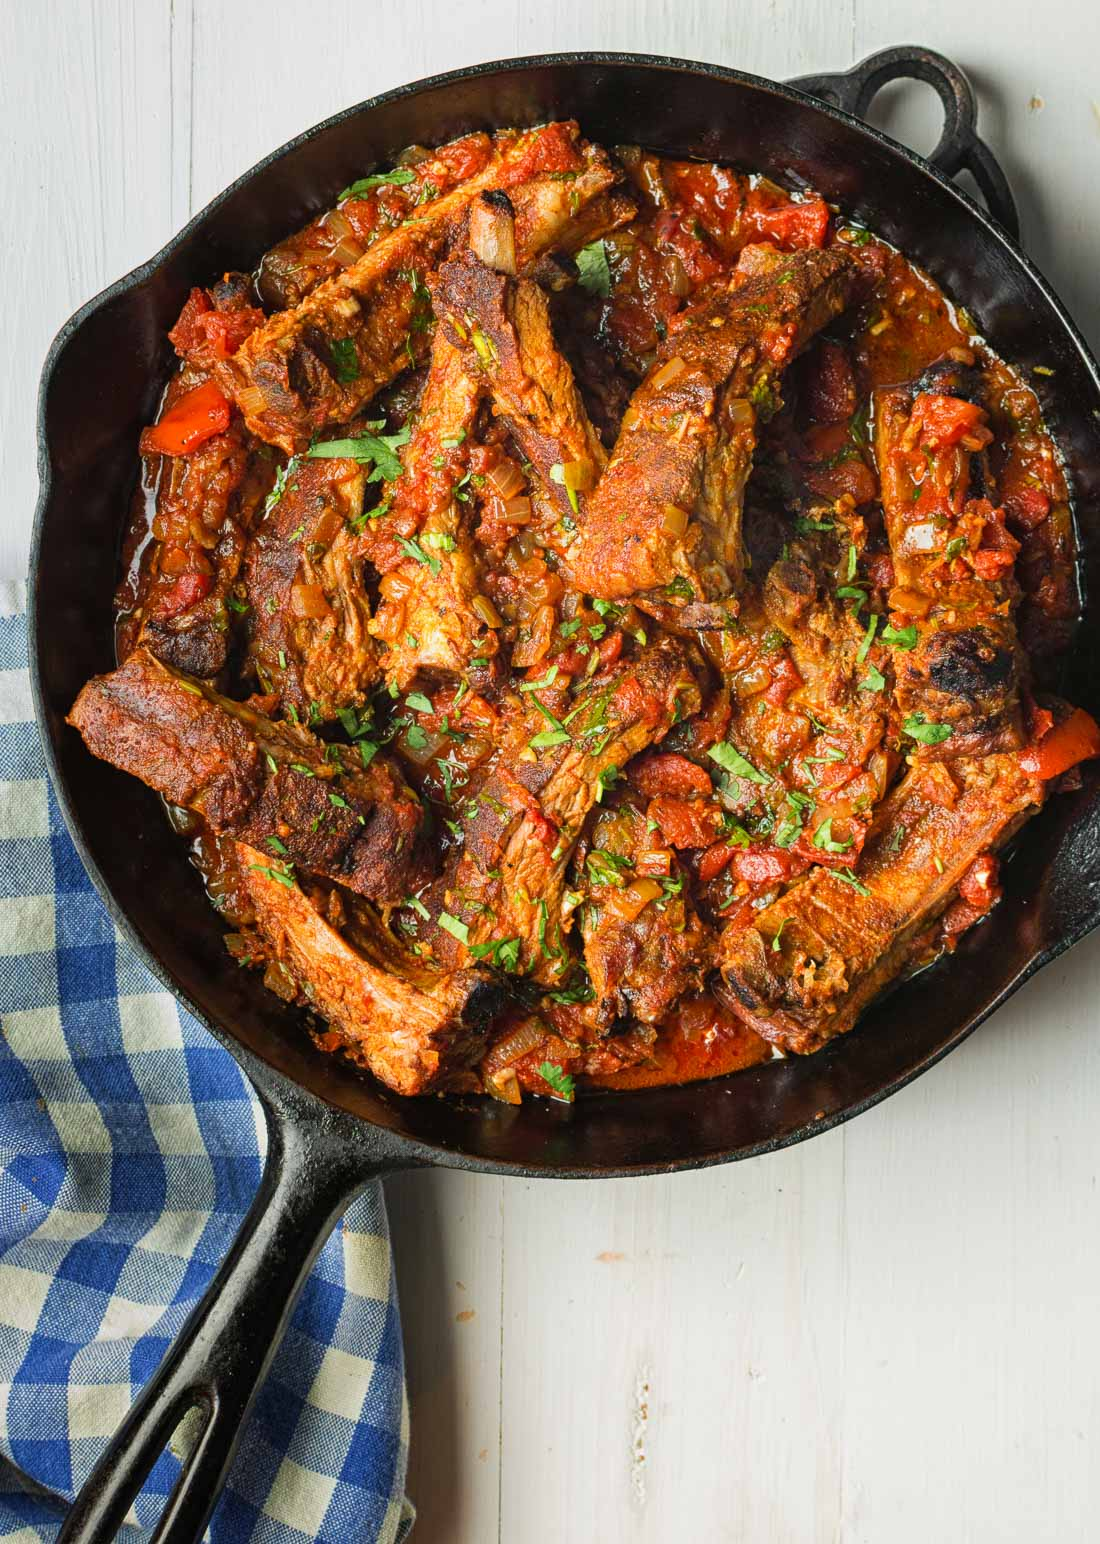 Melting pork back ribs, fire roasted tomatoes and cheese polenta come together in this fine dining riff on Mexican pork chili.